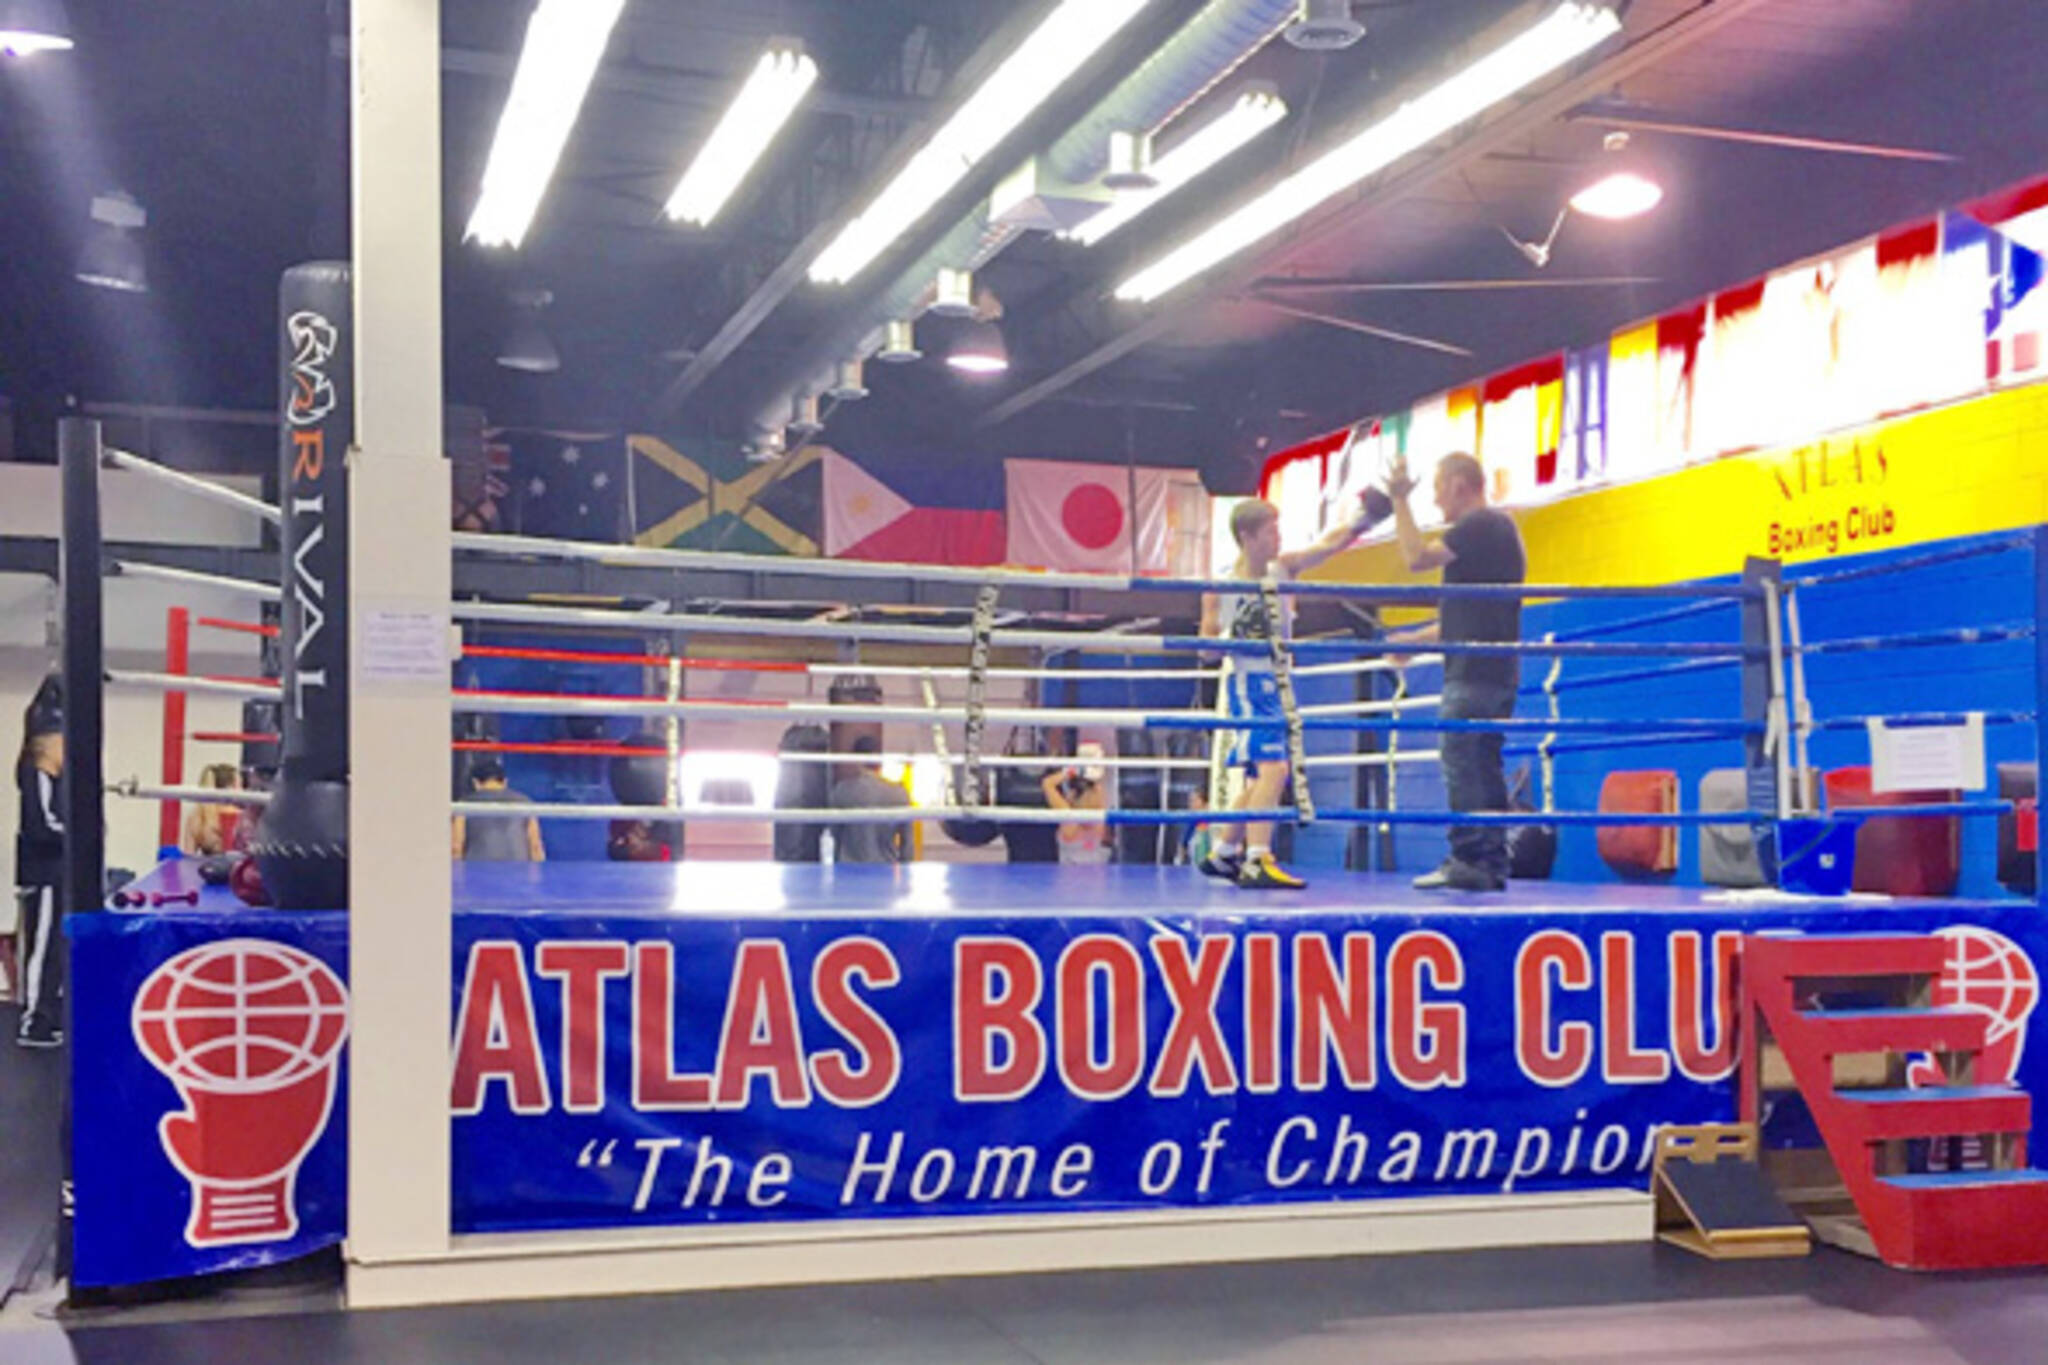 atlas boxing club